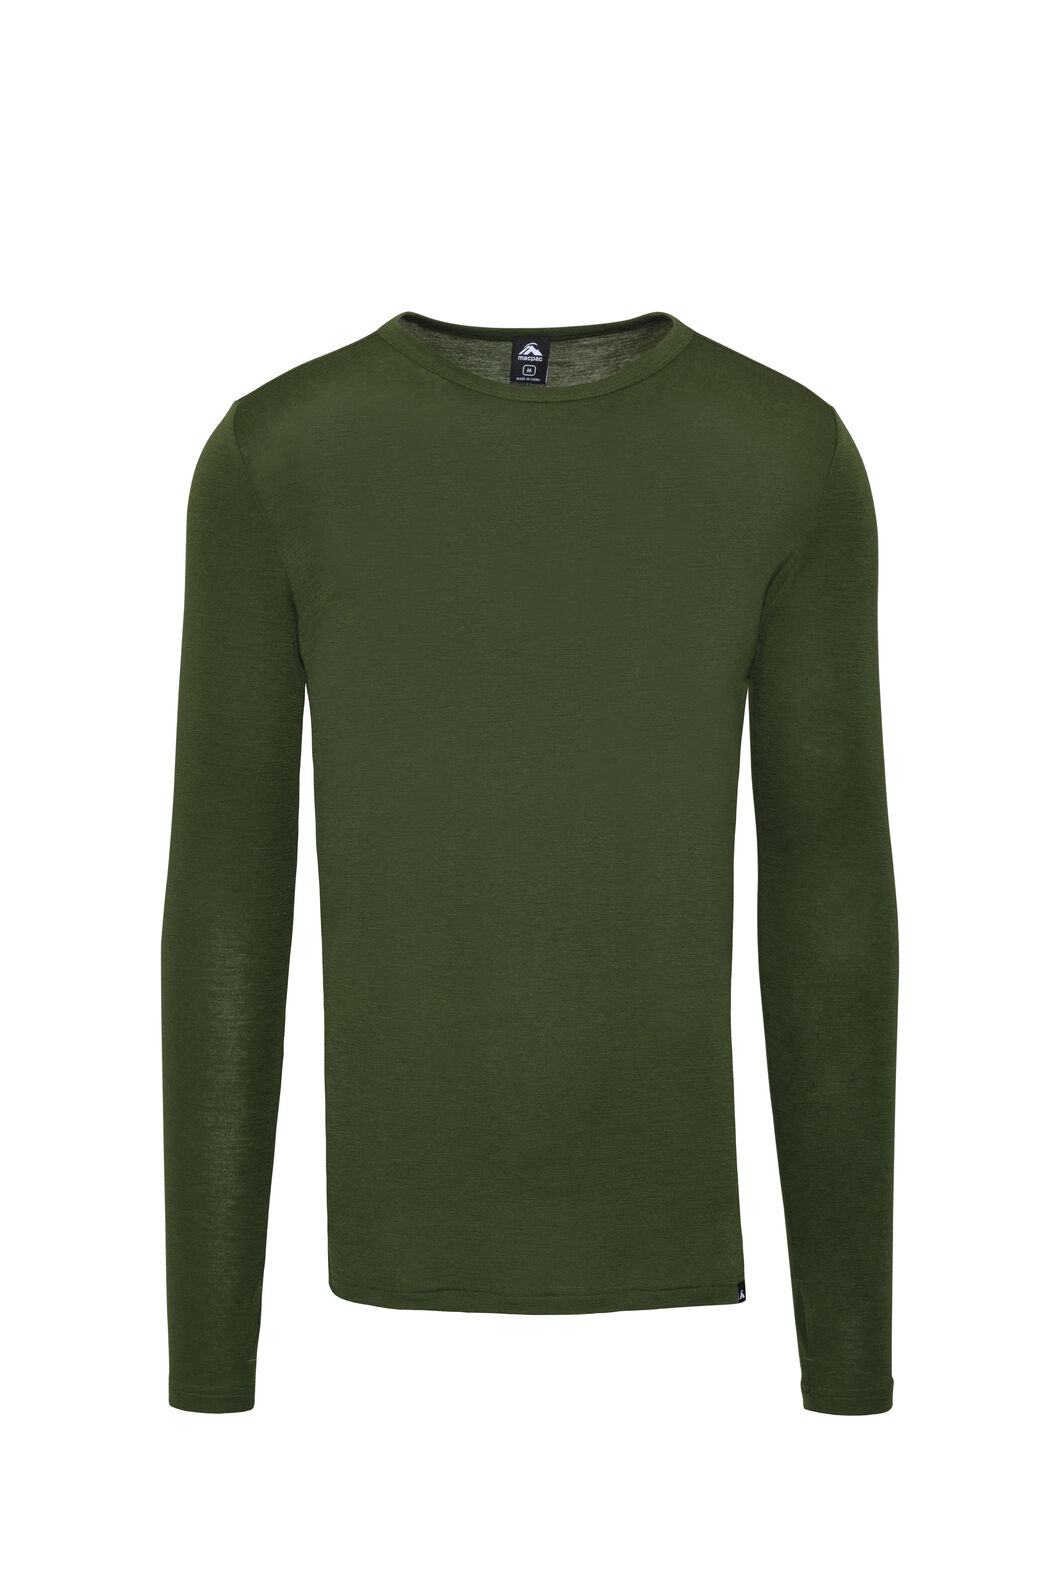 Macpac 220 Merino Long Sleeve Top — Men's, Chive, hi-res